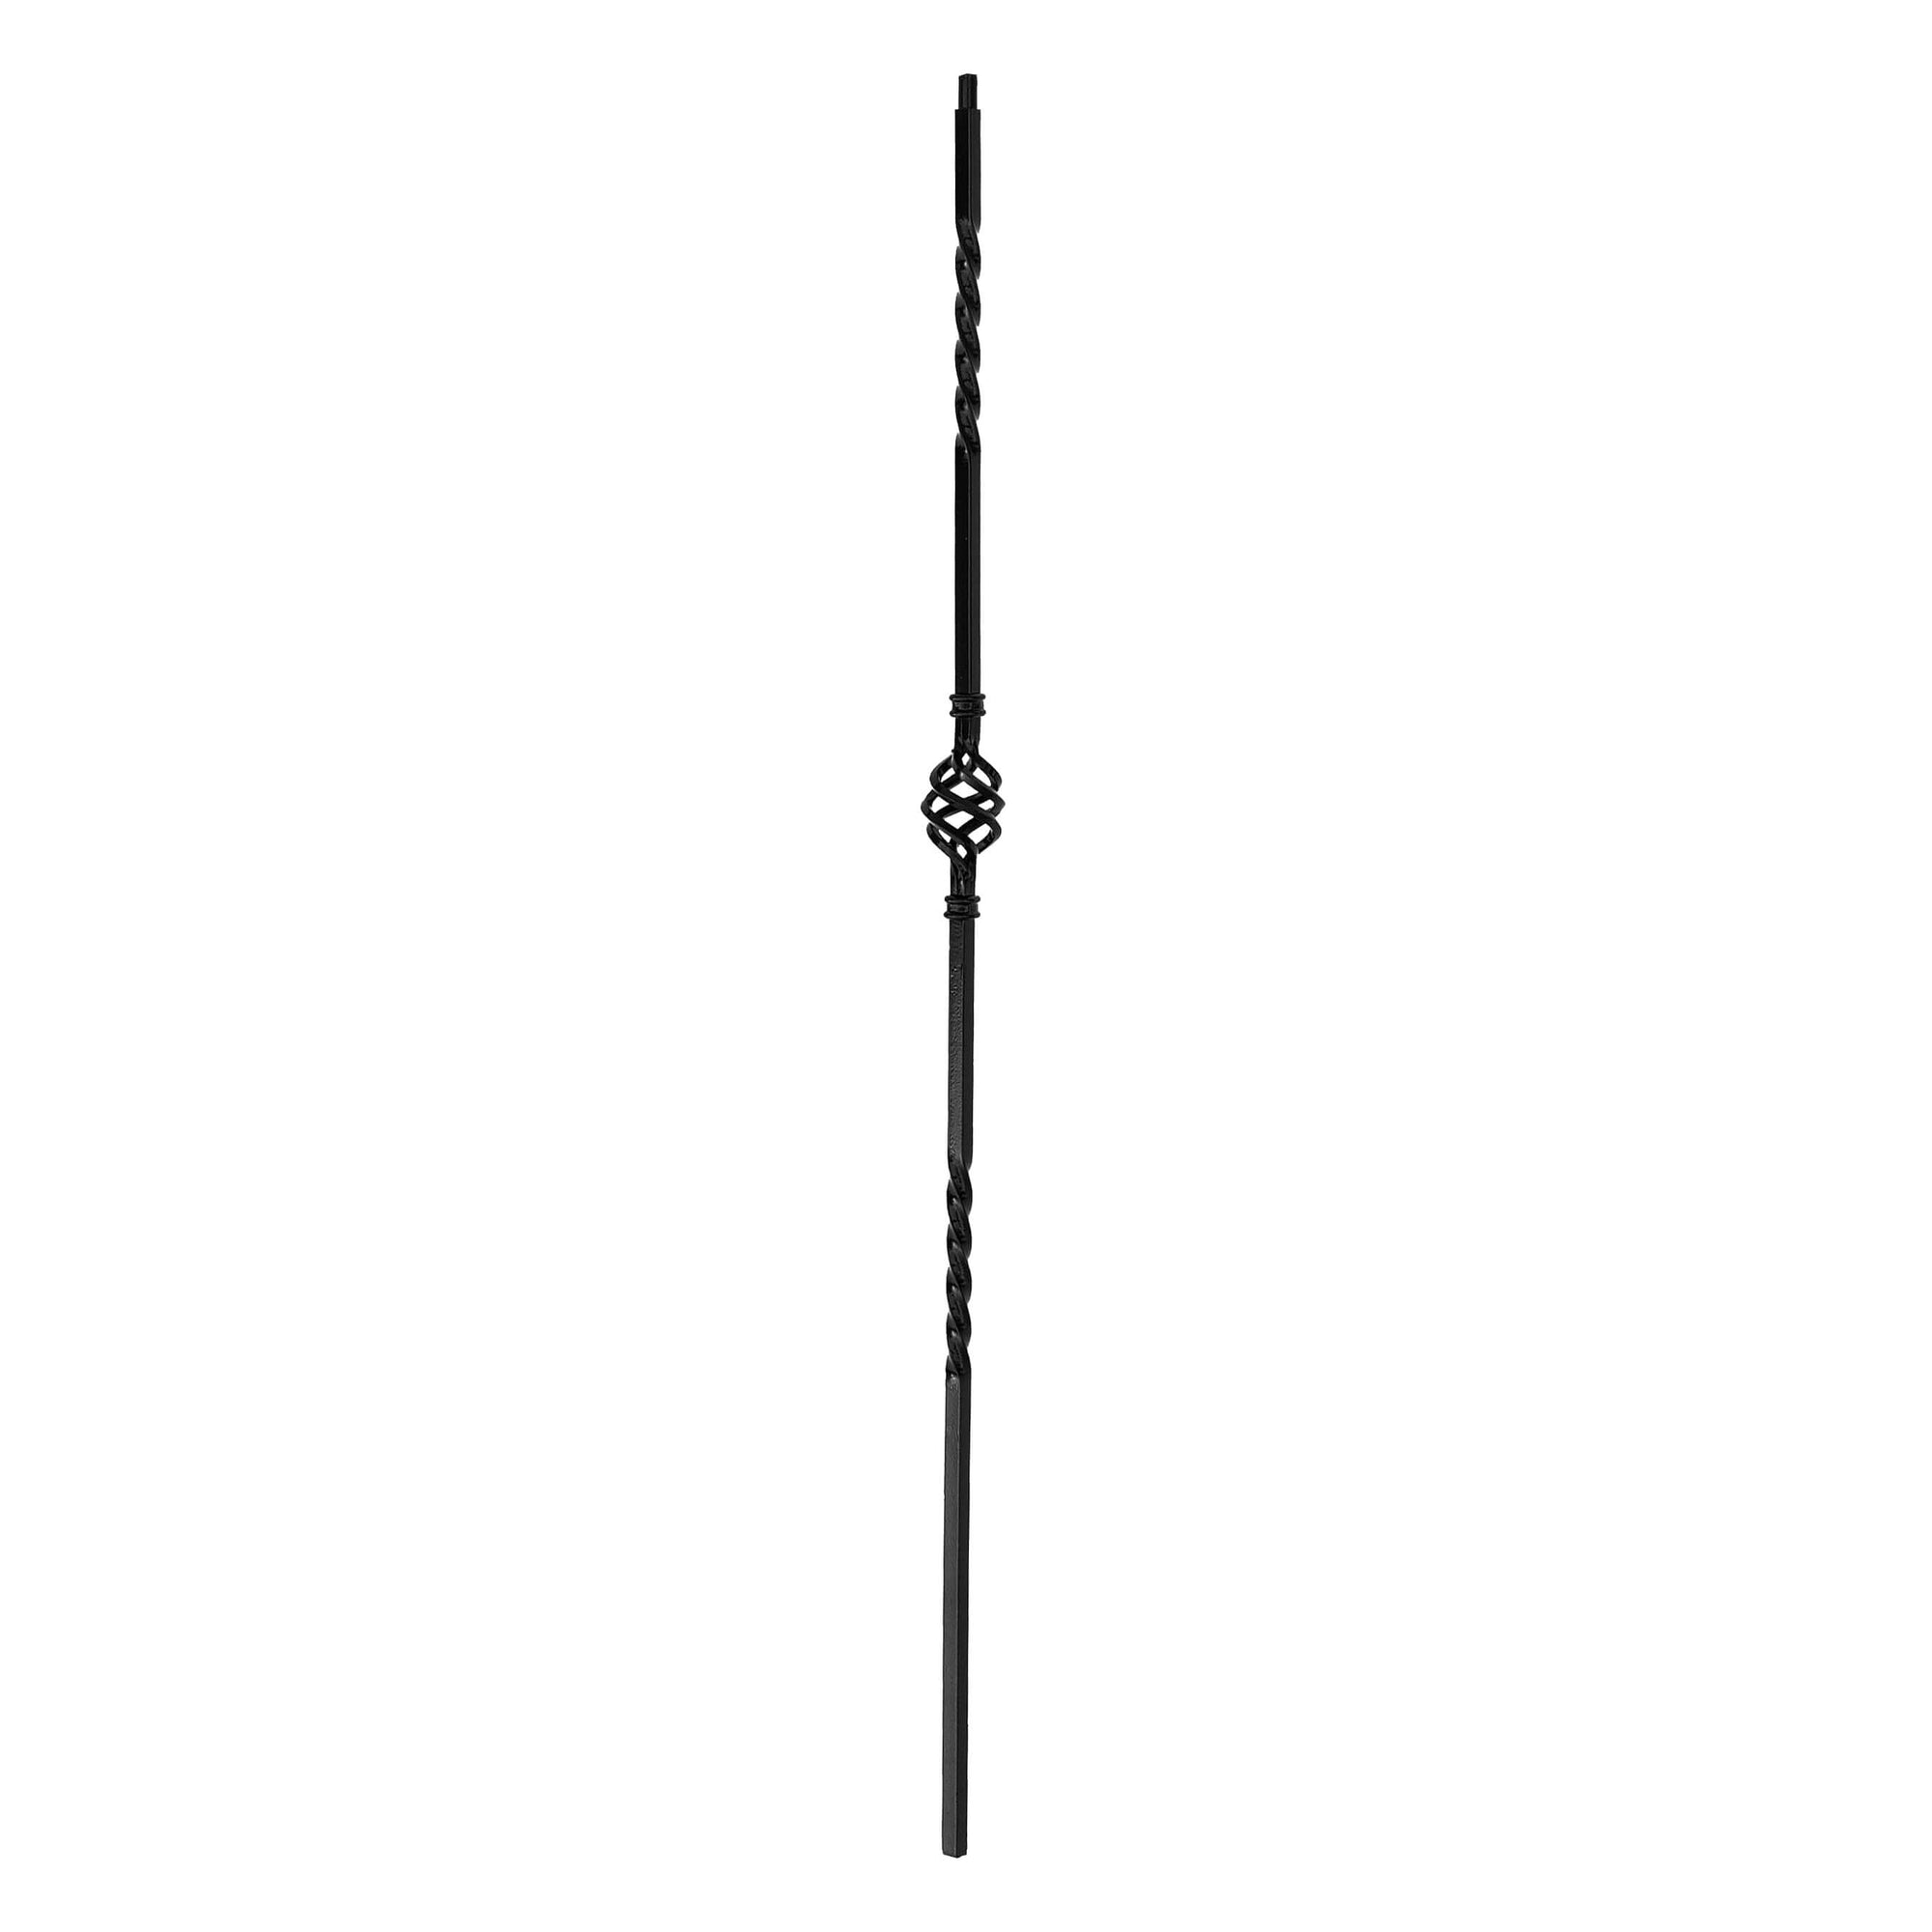 "Twist Series Square 44-3/32""H Single Basket Double Twist Solid Iron Baluster (PC6/1, PC6/2)"